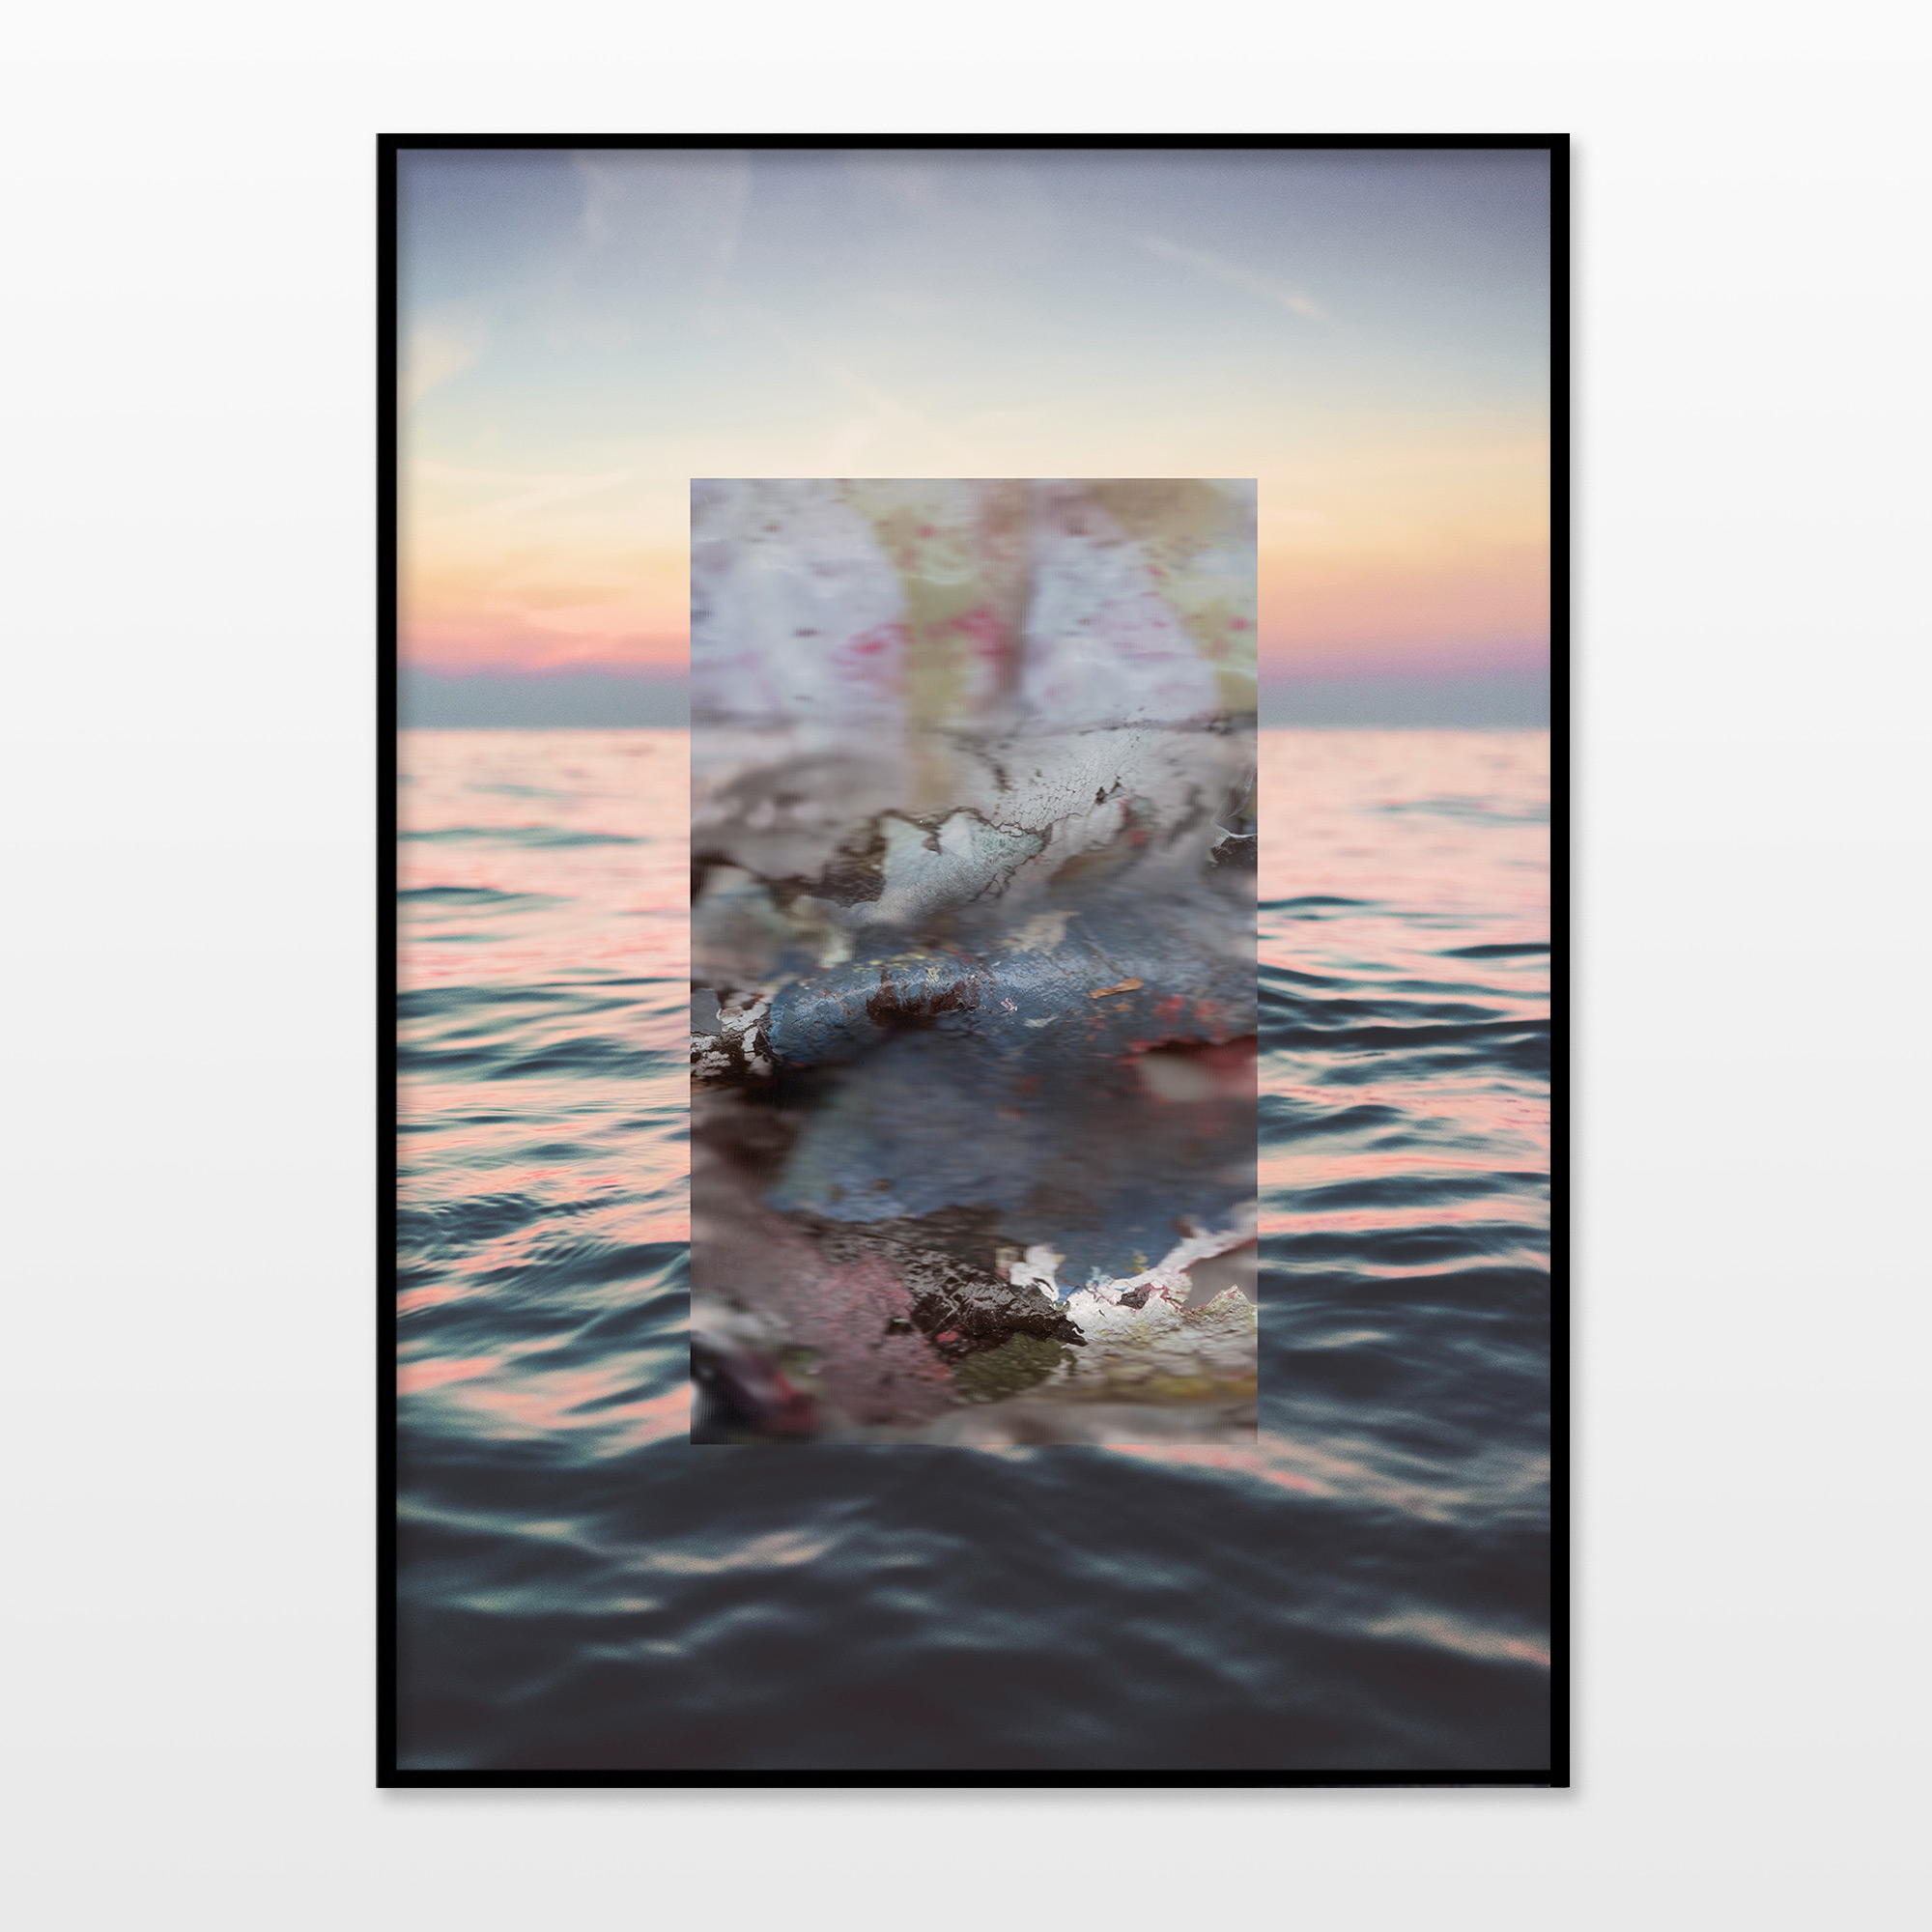 posters-prints, giclee-print, abstract, colorful, graphical, illustrative, landscape, pop, architecture, nature, oceans, patterns, sky, blue, pink, red, ink, paper, beautiful, contemporary-art, copenhagen, danish, horizontal, interior, interior-design, modern, modern-art, naturalism, nordic, posters, prints, scandinavien, sea, Buy original high quality art. Paintings, drawings, limited edition prints & posters by talented artists.